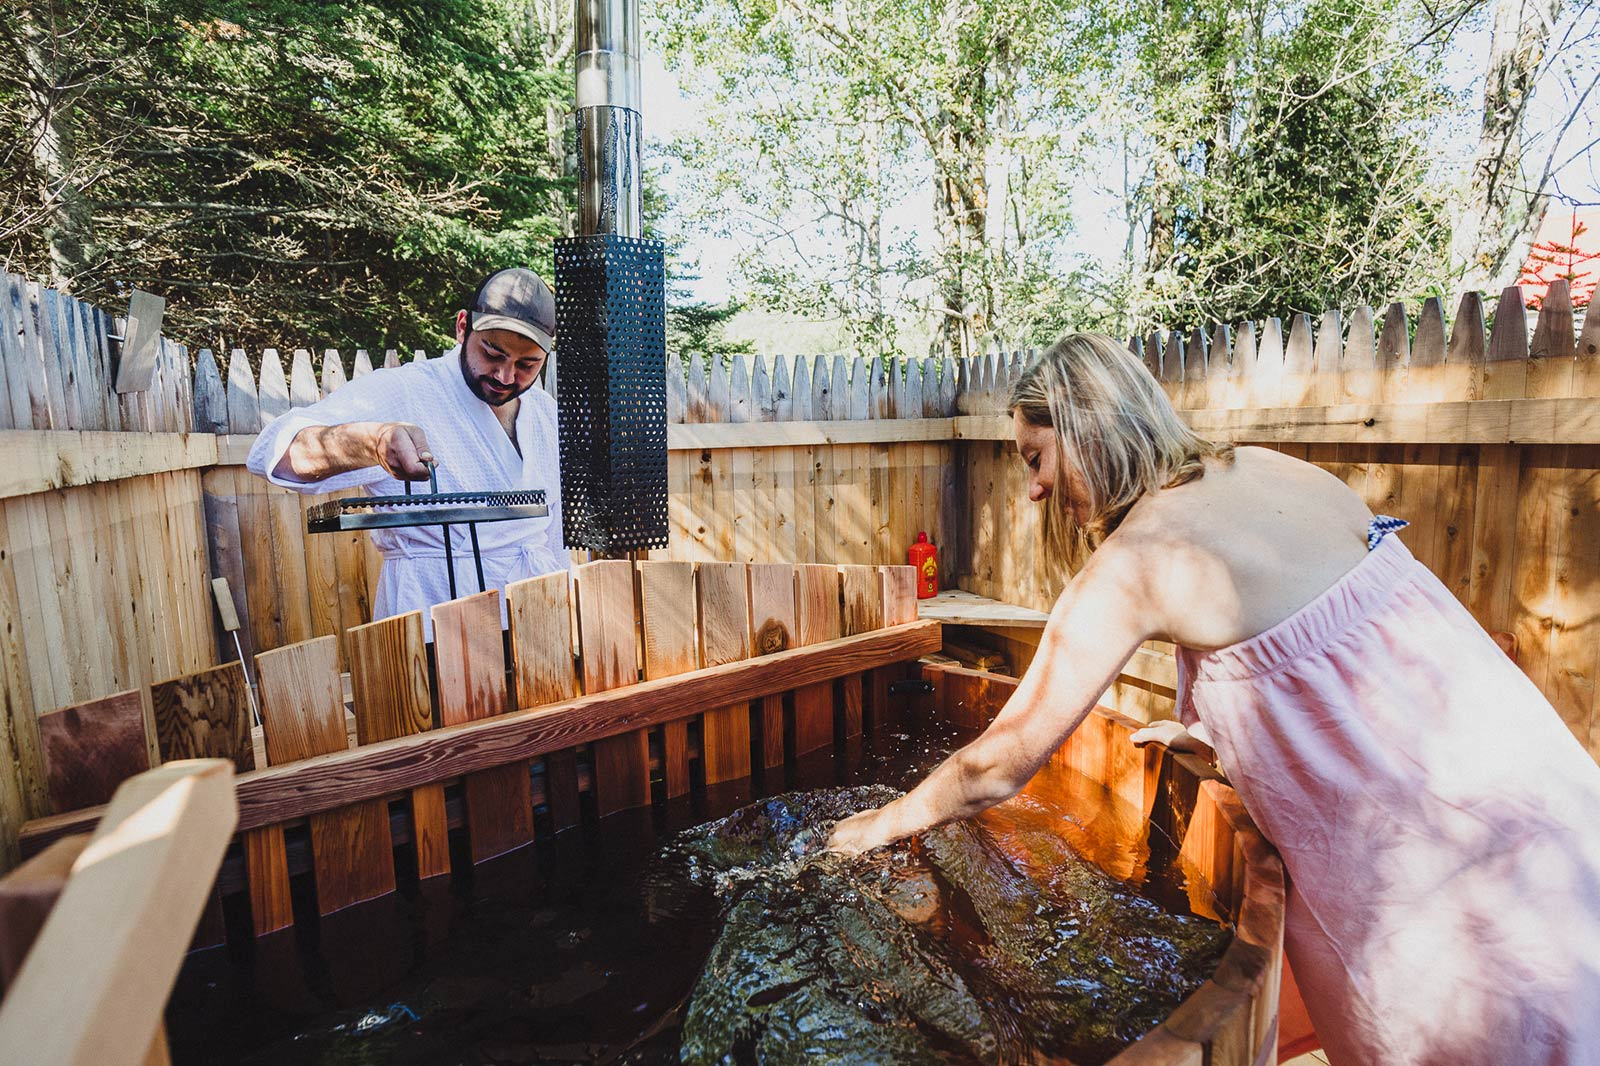 The Wooden Bearrel Hot Tub - West River camping